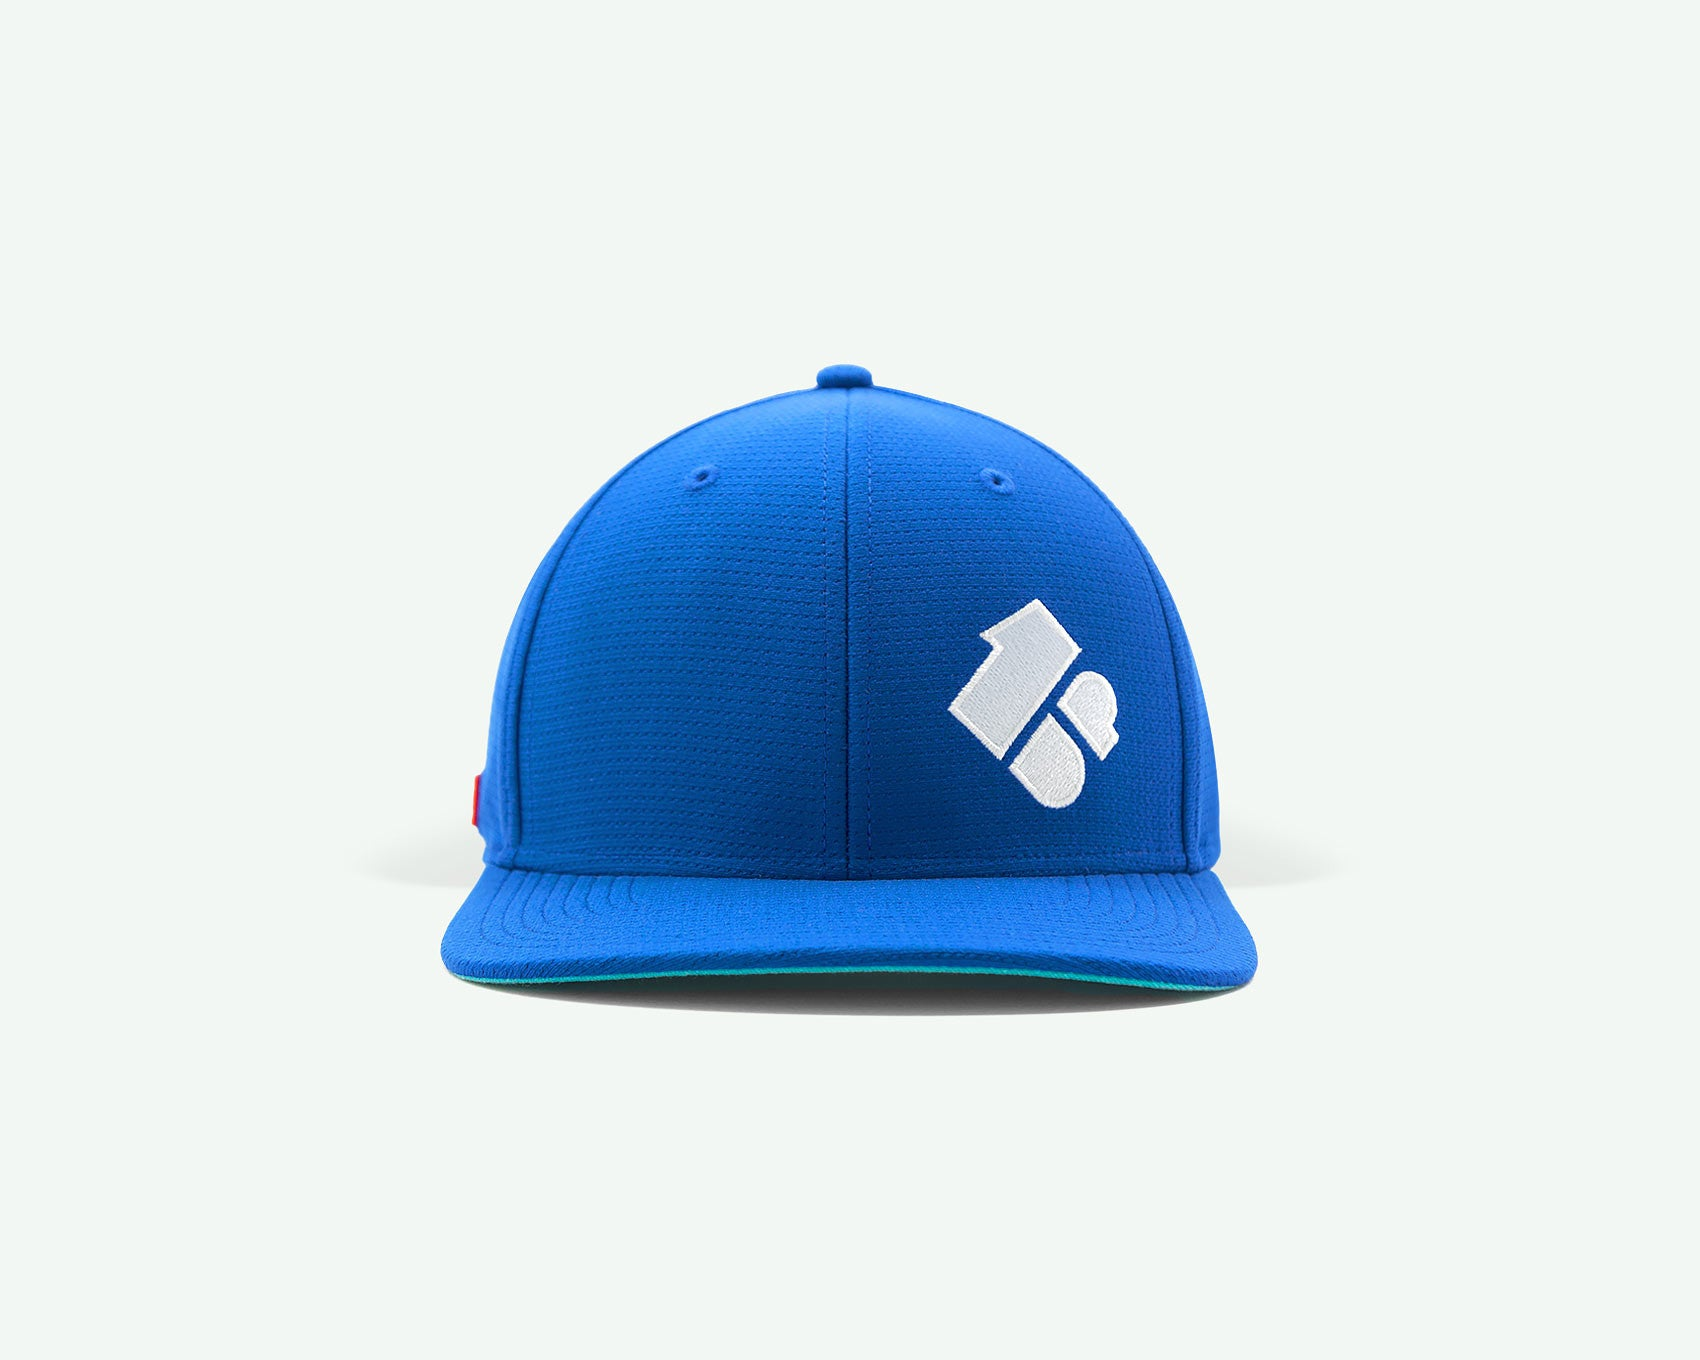 102 1up series blue structured 6-panel golf cap with lightweight 'cool pass' mesh fabric and Velcro closure